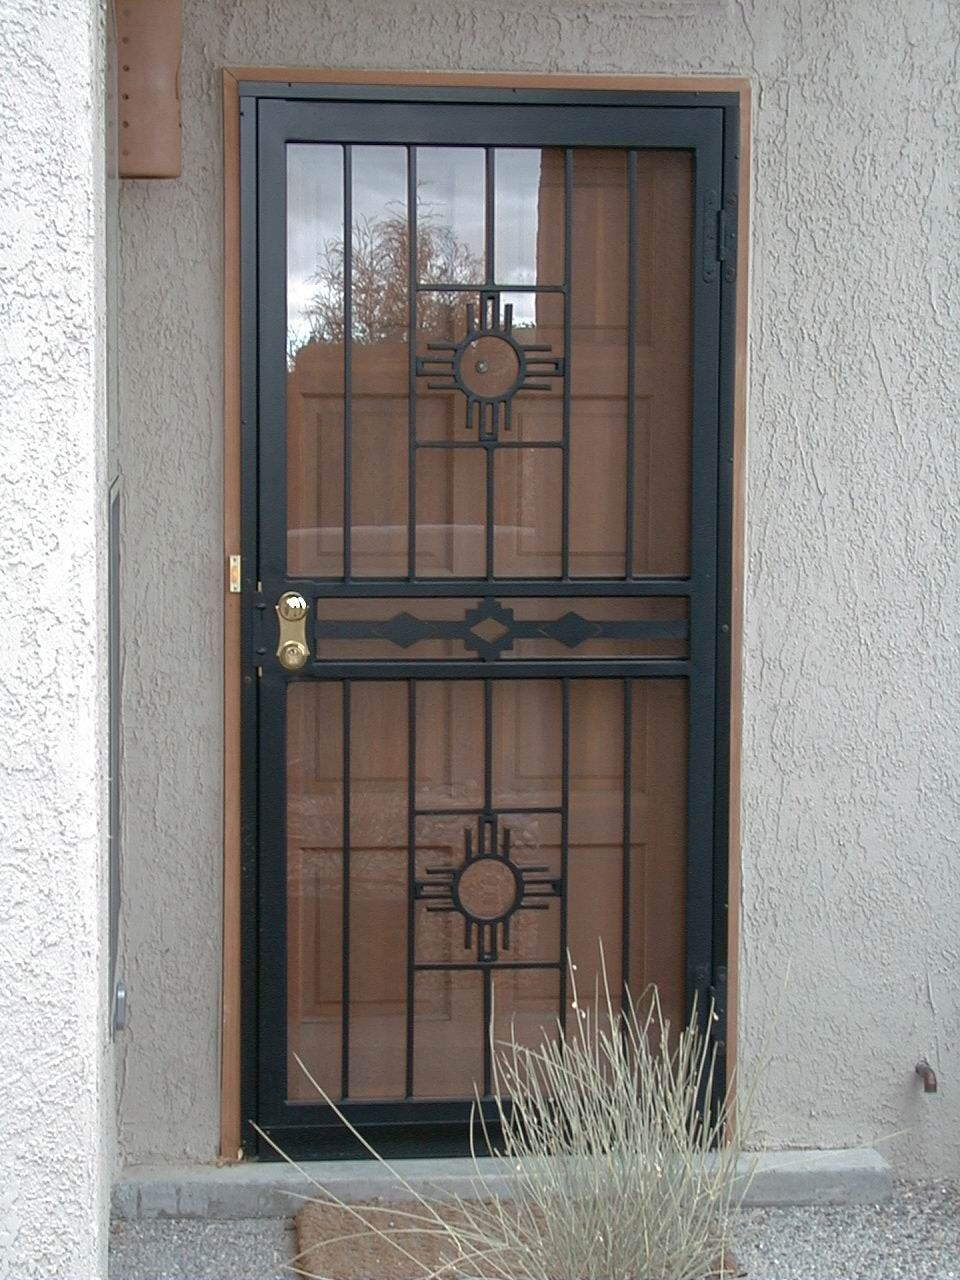 Http://securityscreendoorsmolni.blogspot.com.au/2015/02/security Screen  Doors Albuquerque.html